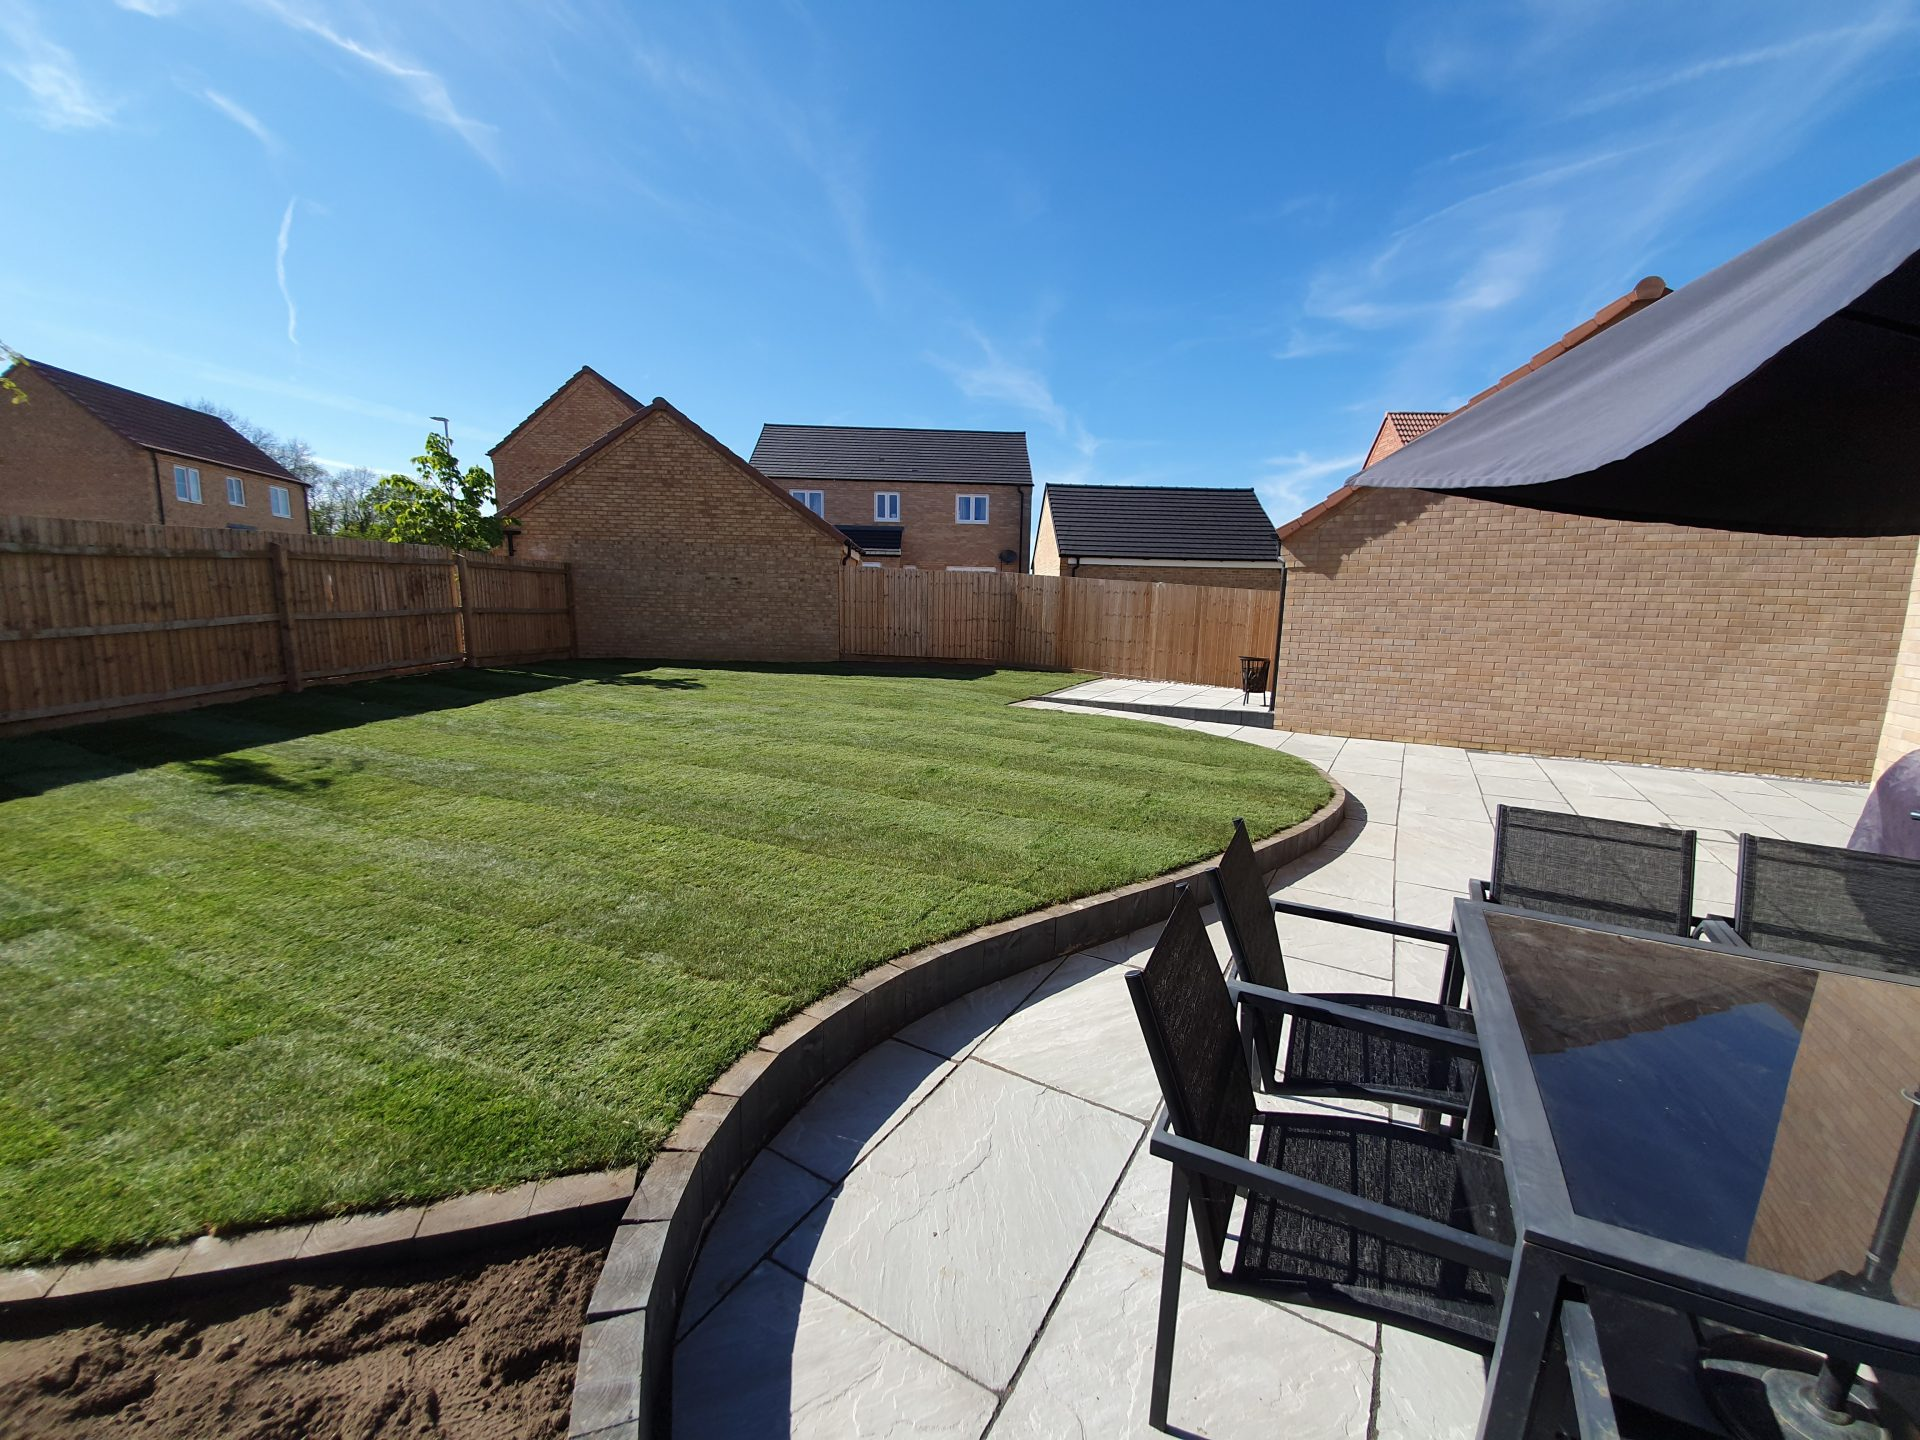 raised lawn curved patio seating area